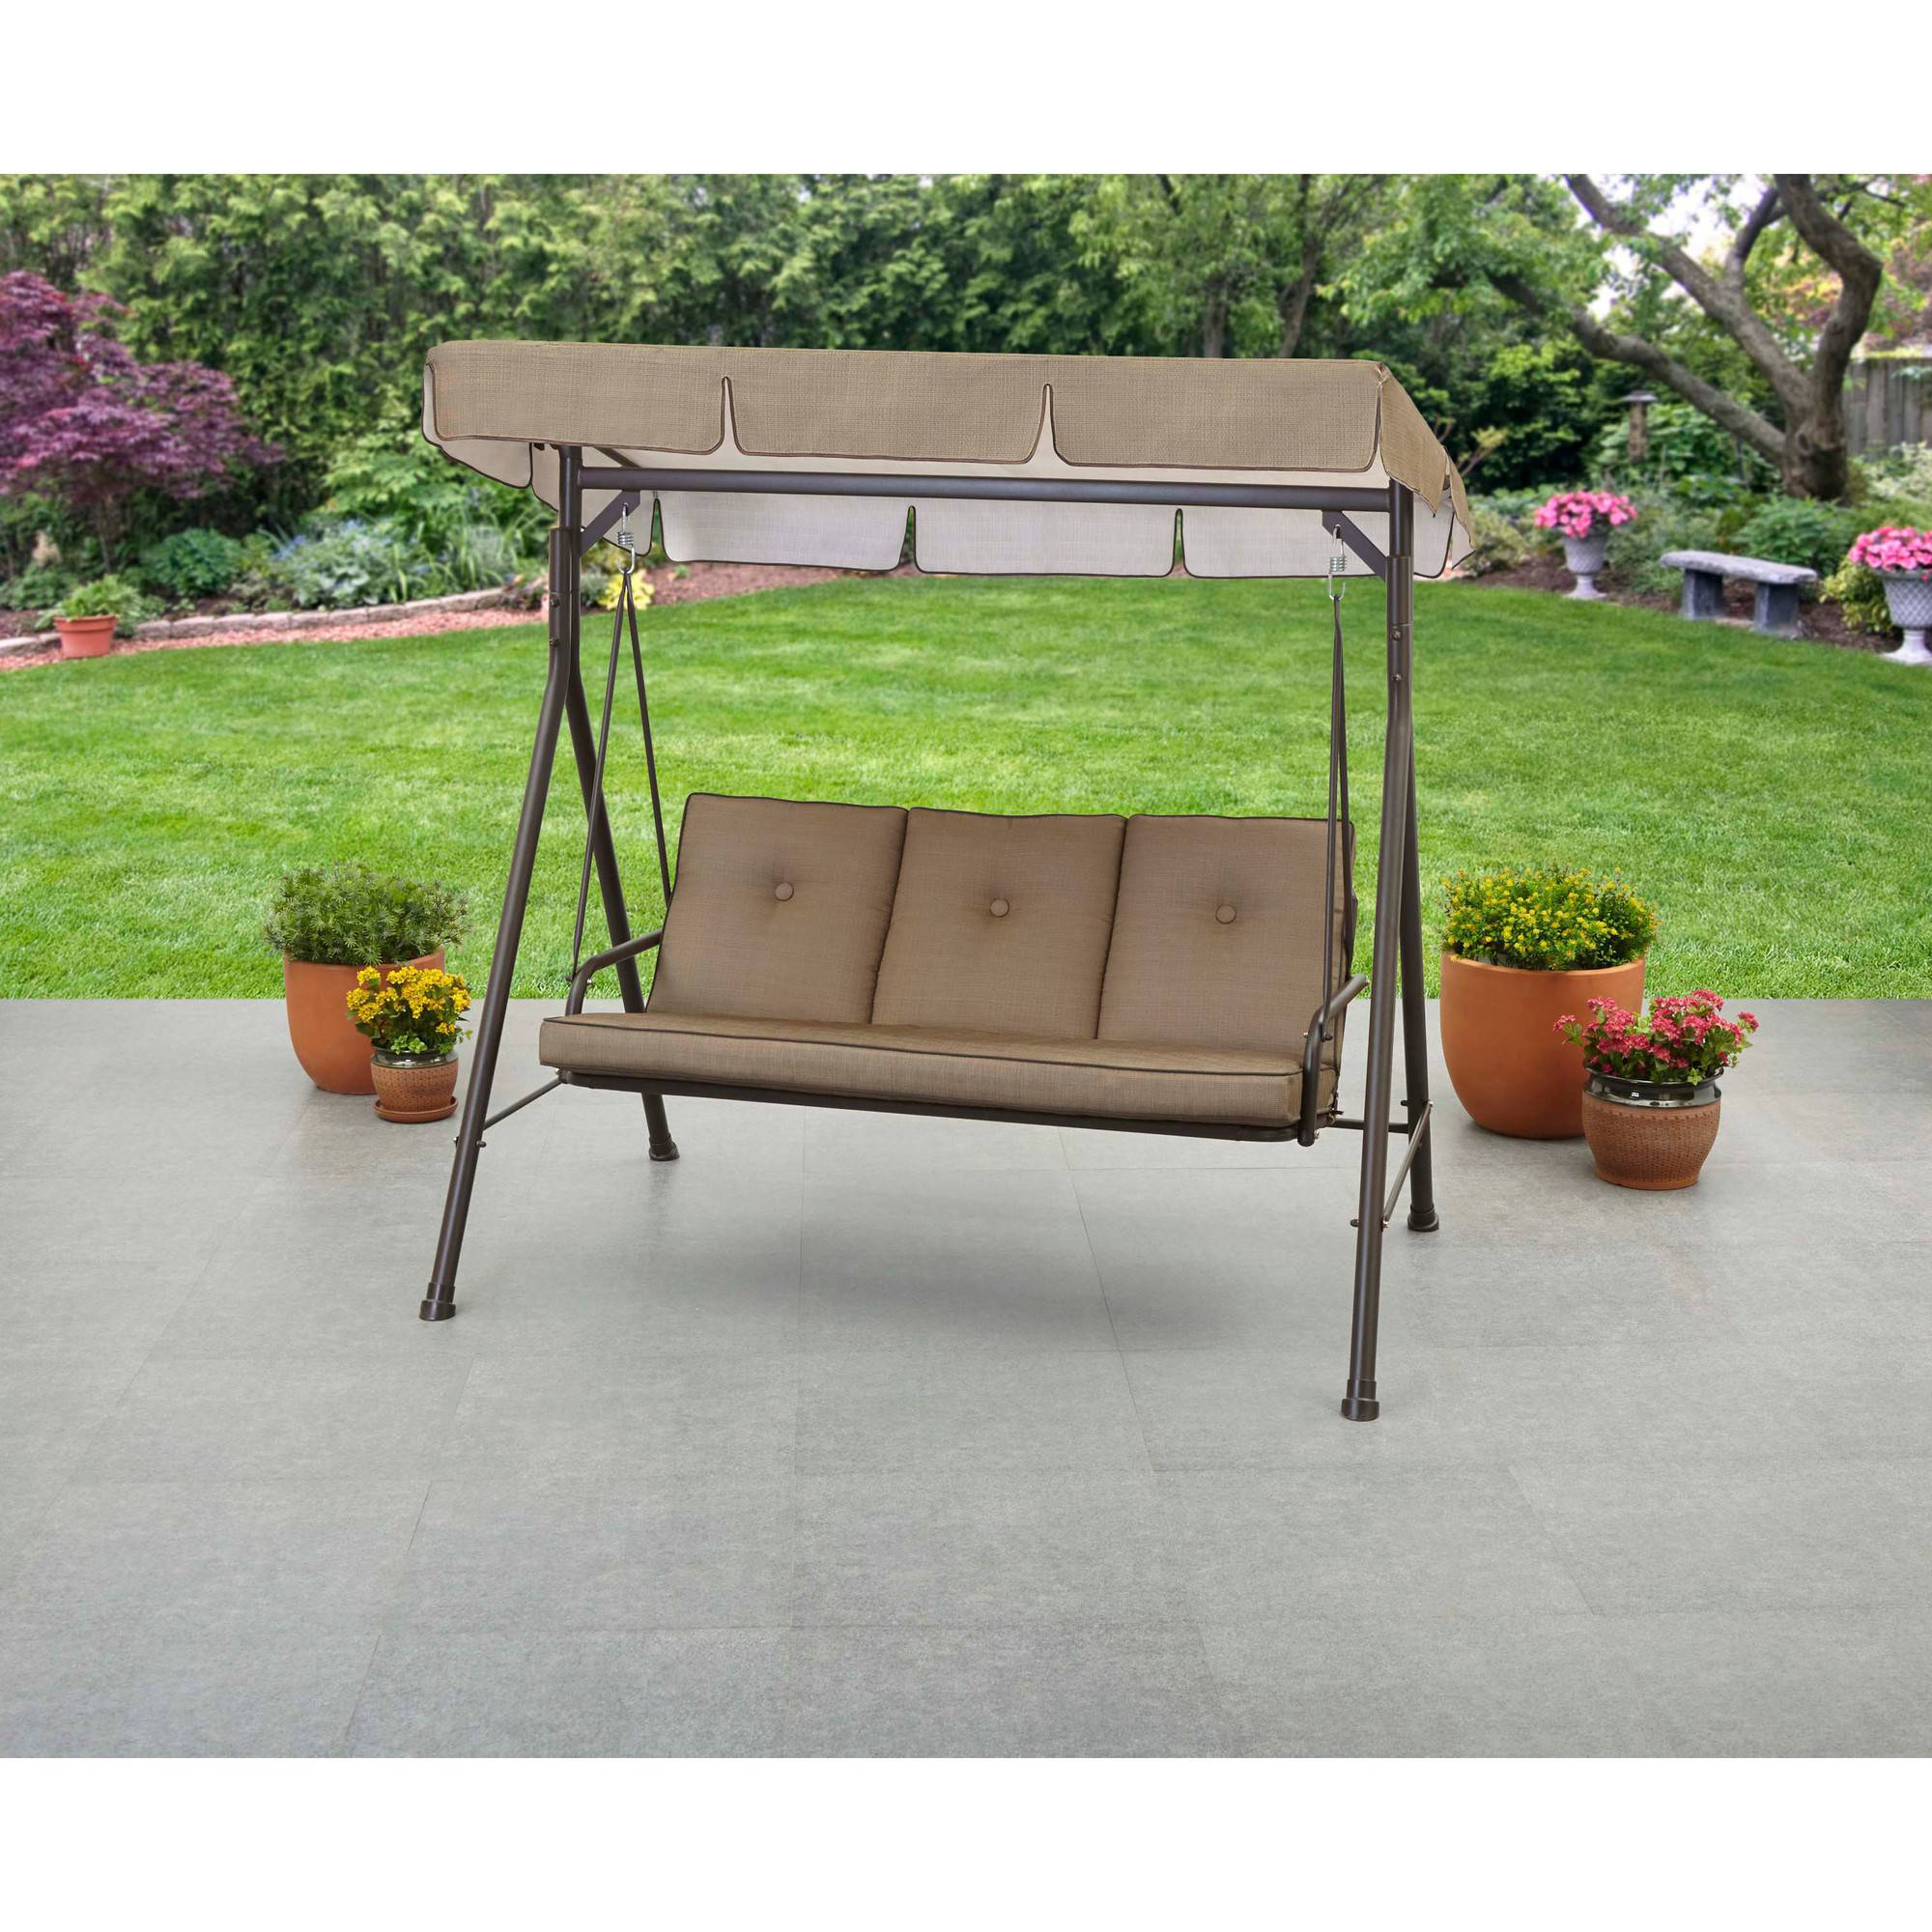 Mainstays Maddison 3Seat Cushion Swing Brown Walmartcom